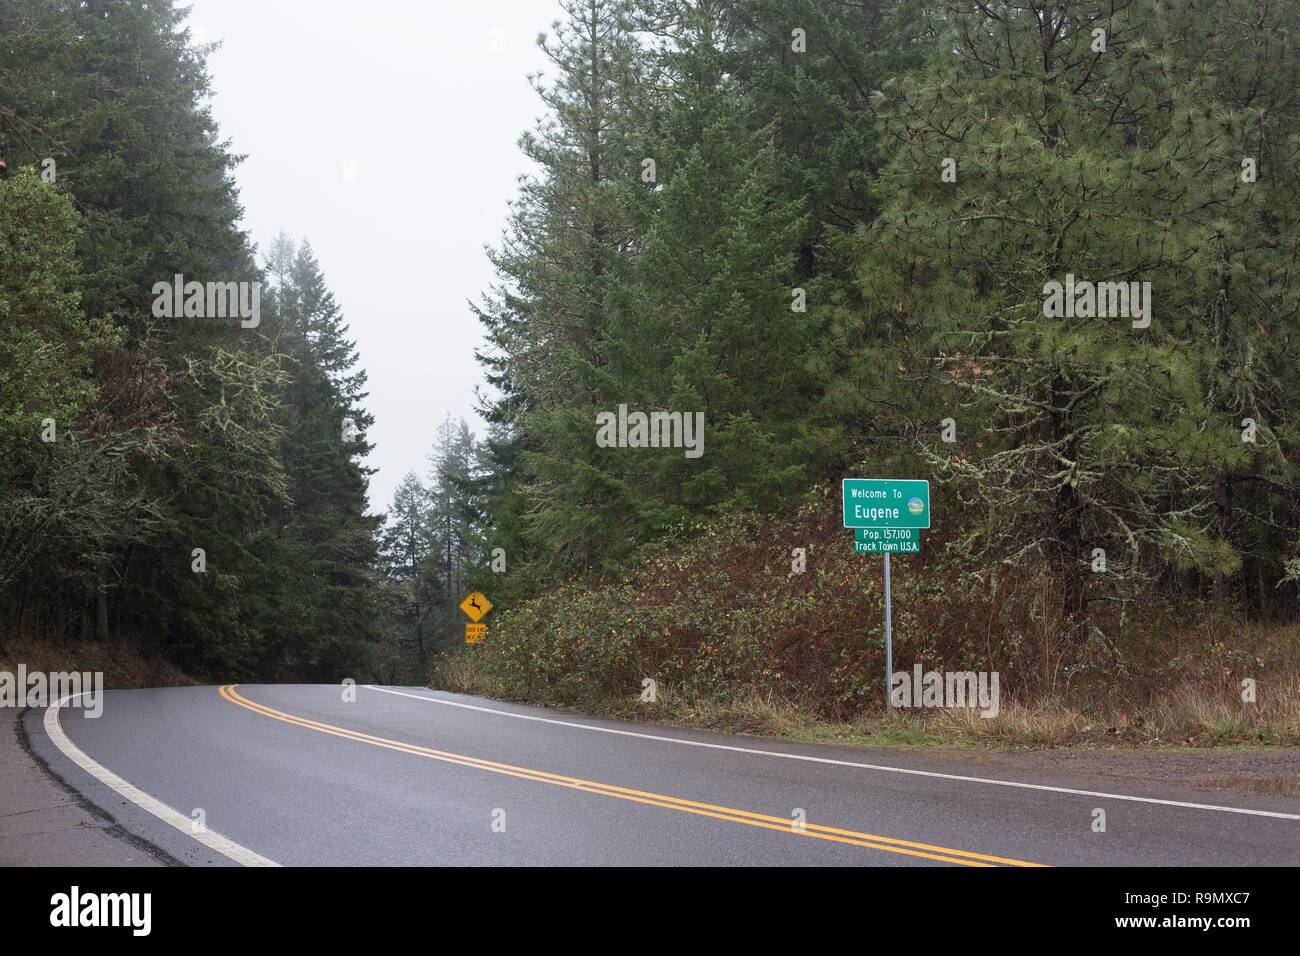 A city limits sign next to a rural highway in Eugene, Oregon, USA. - Stock Image